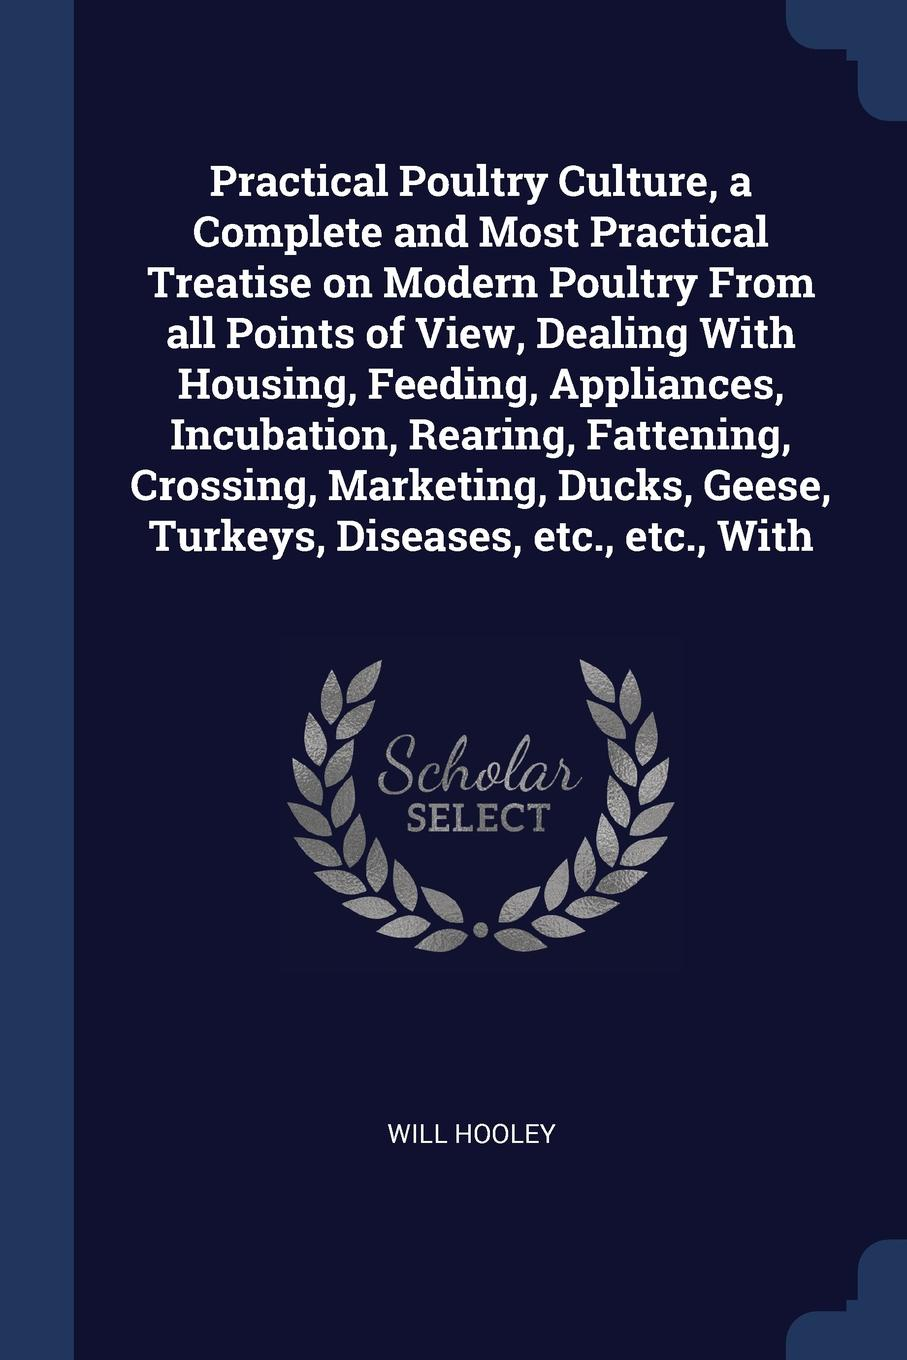 Will Hooley Practical Poultry Culture, a Complete and Most Practical Treatise on Modern Poultry From all Points of View, Dealing With Housing, Feeding, Appliances, Incubation, Rearing, Fattening, Crossing, Marketing, Ducks, Geese, Turkeys, Diseases, etc., etc... h will practical poultry culture